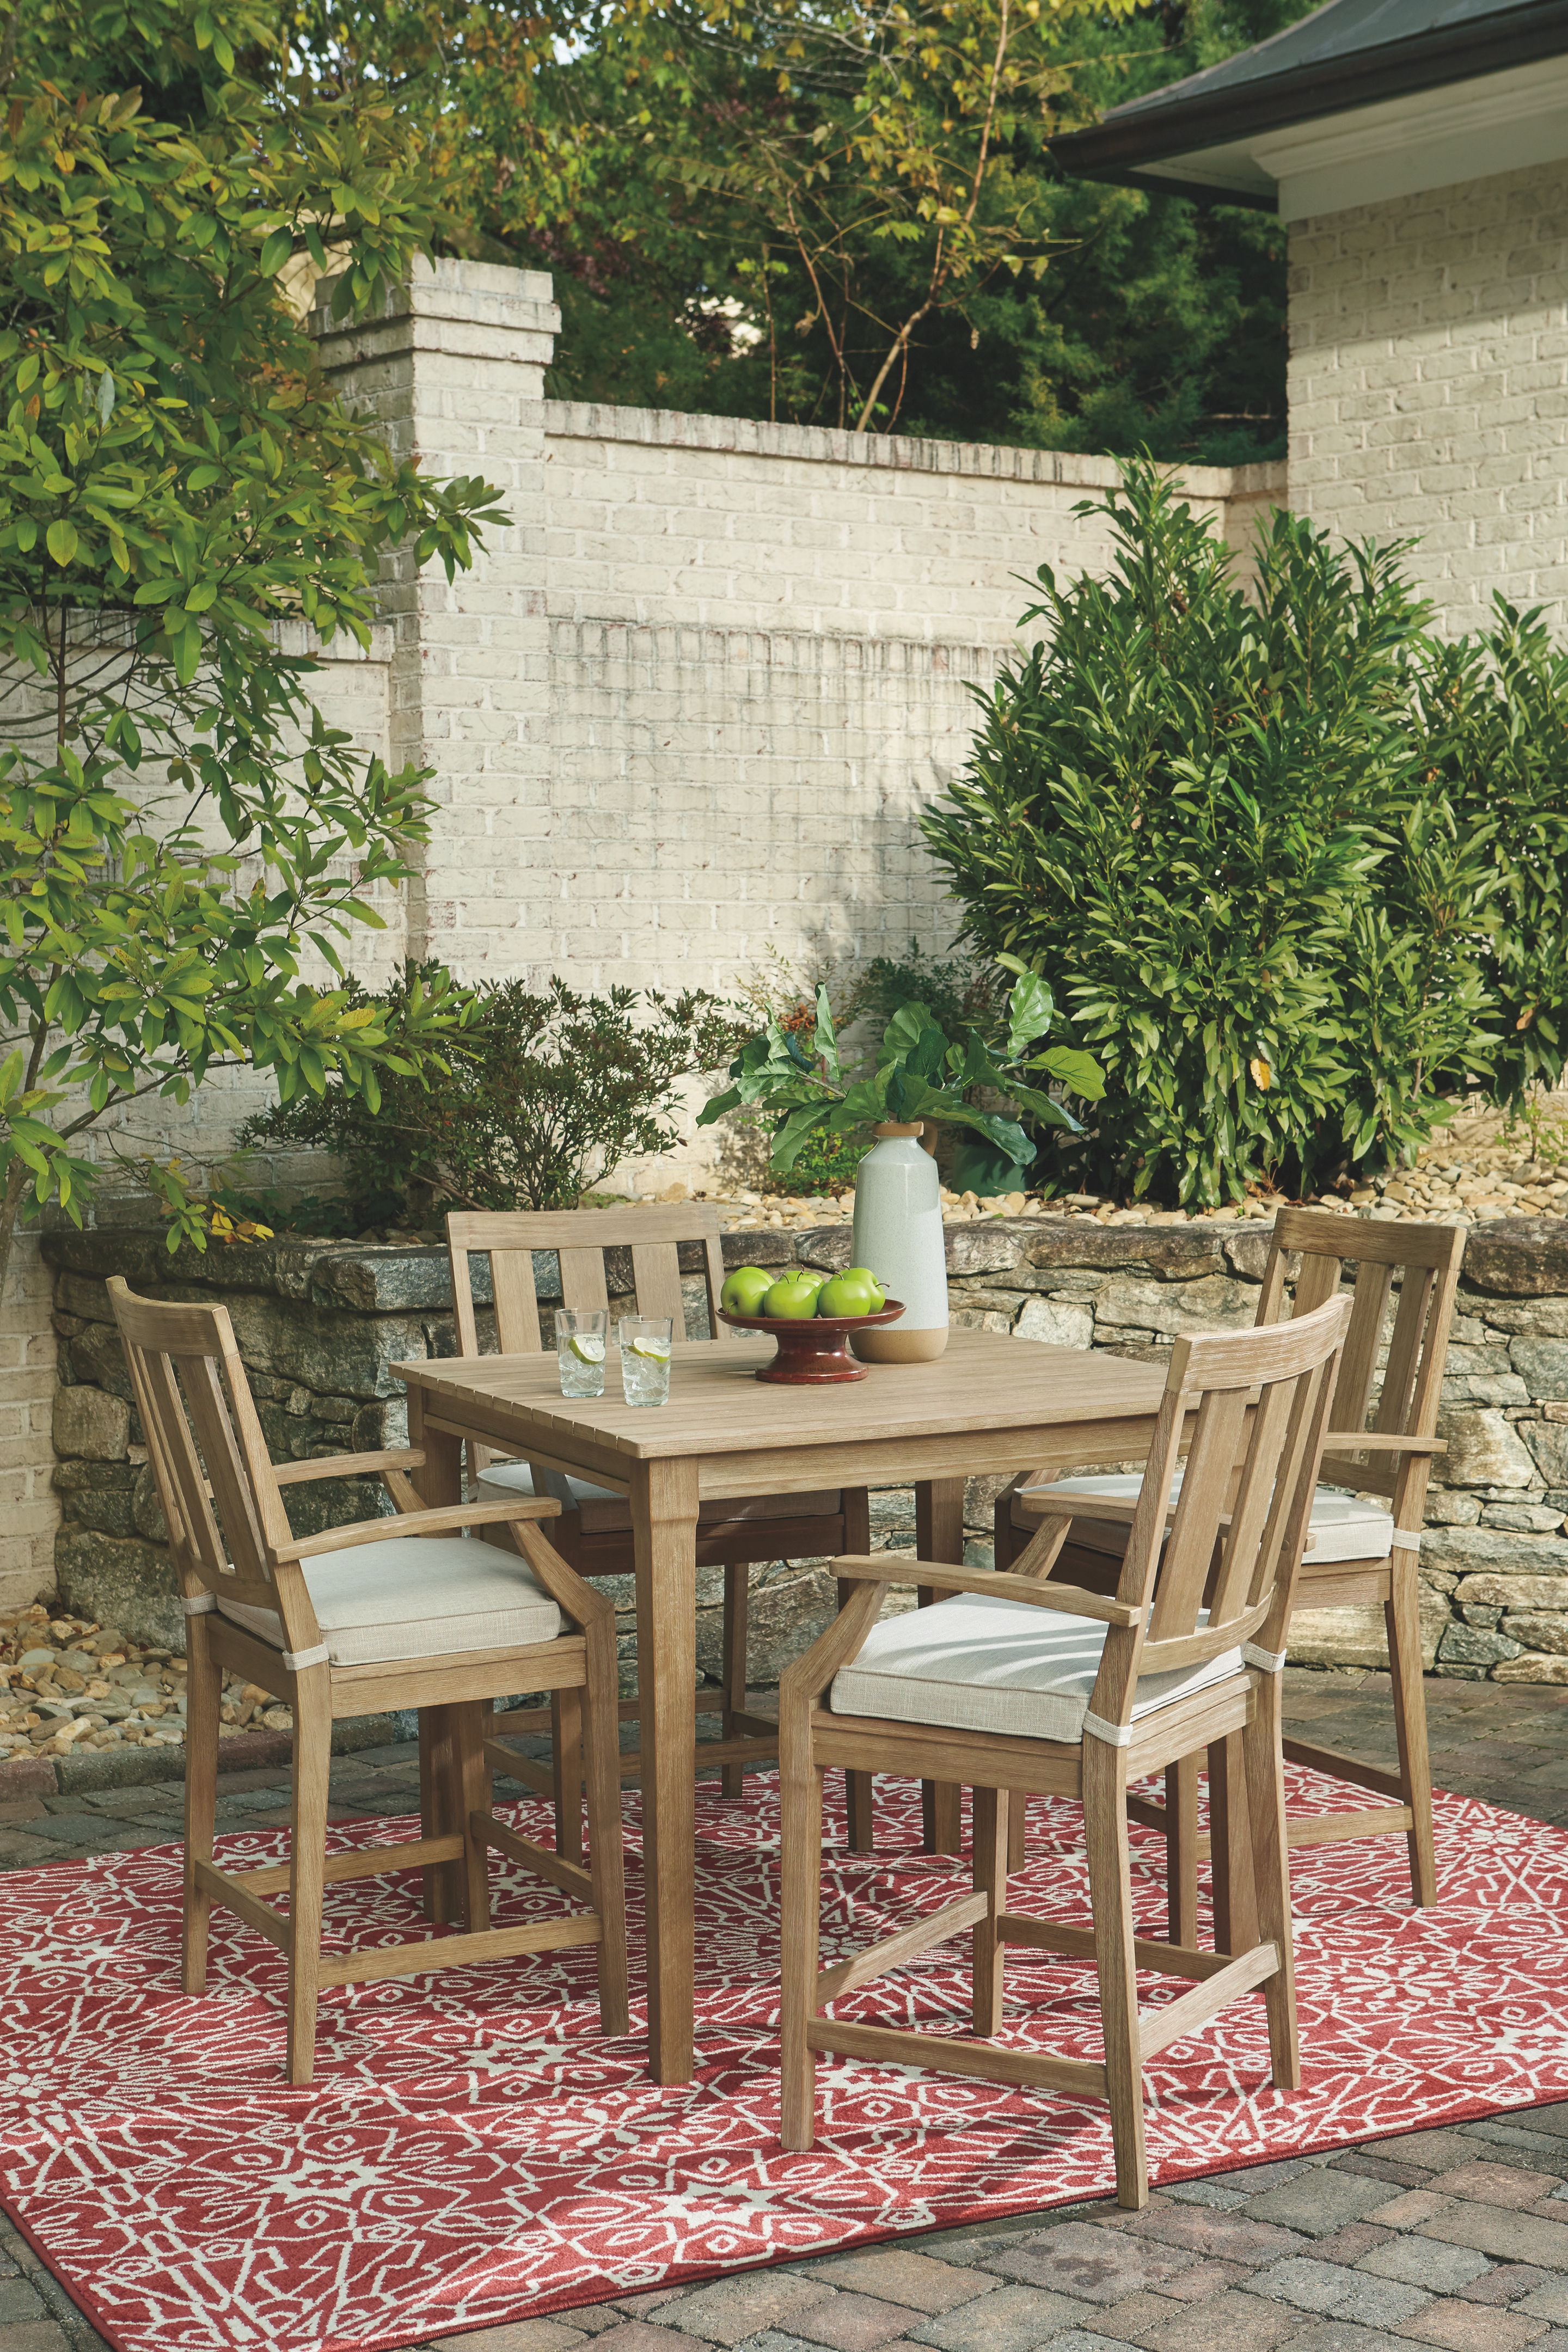 Clare View - Beige - Square Bar Table & 4 Barstools ... on Clare View Beige Outdoor Living Room id=28913